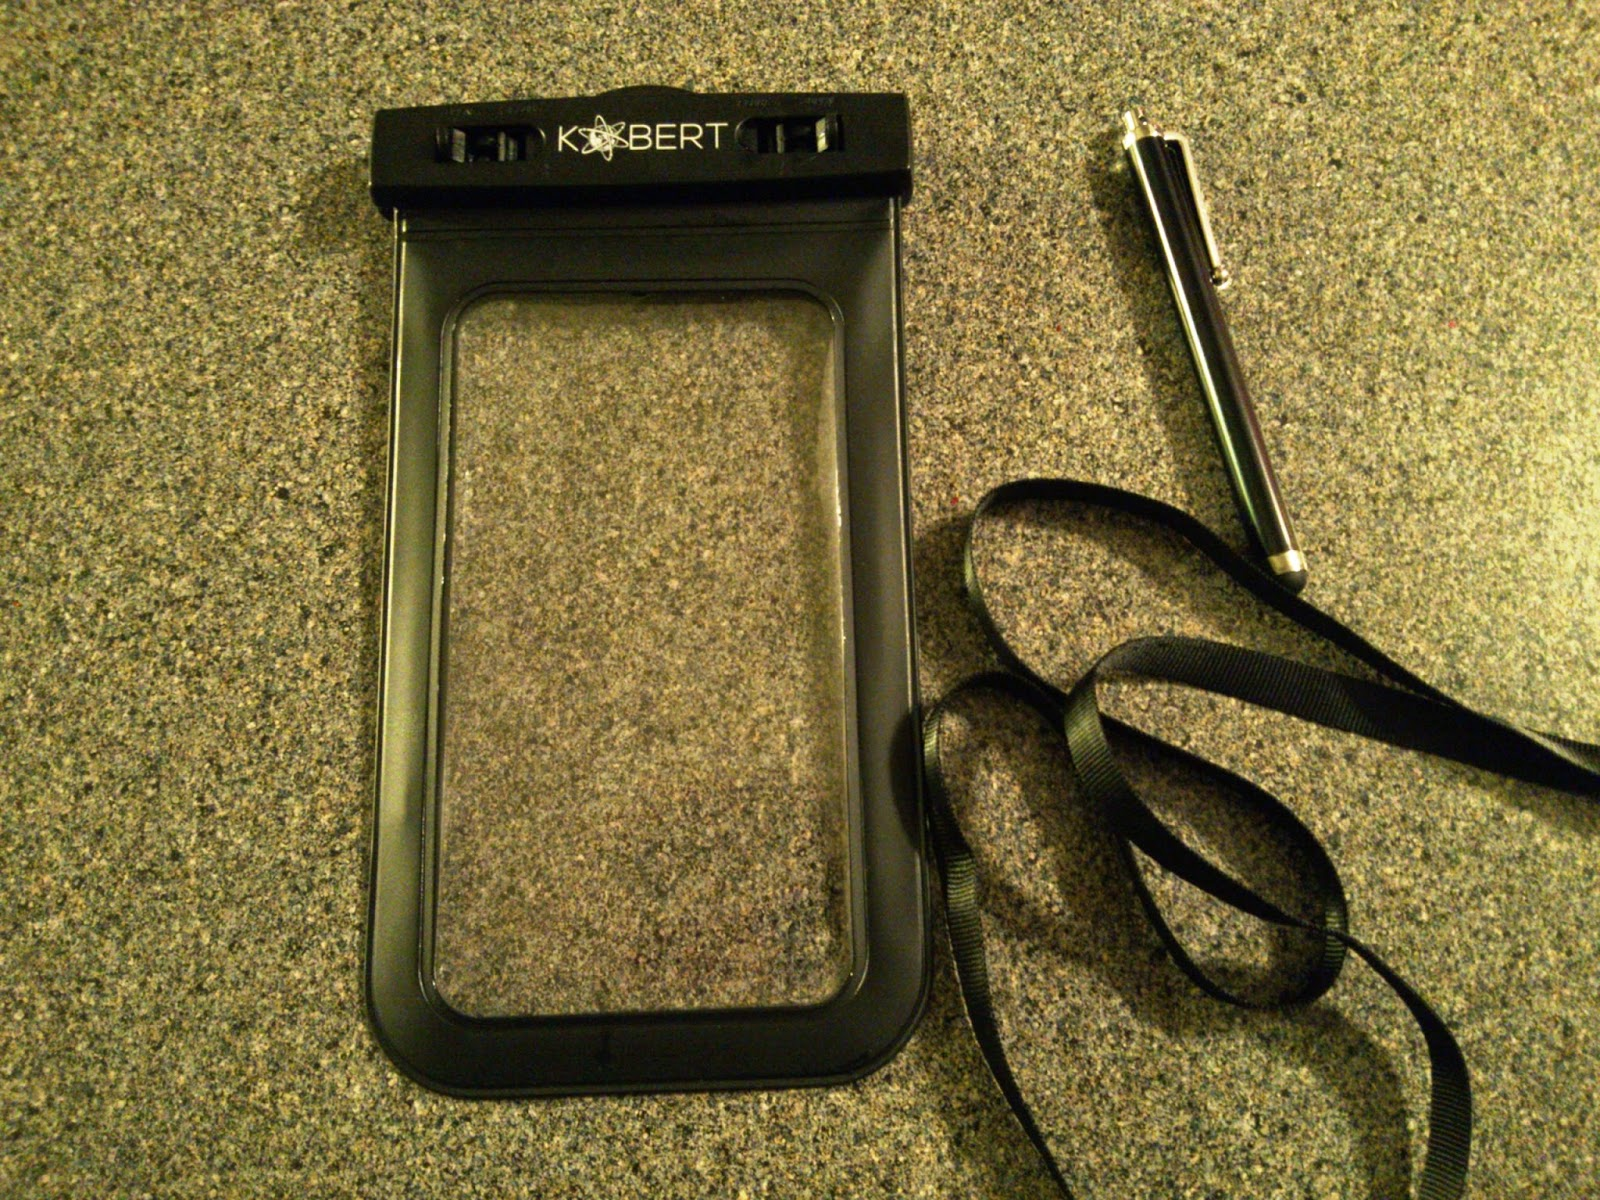 Kobert Waterproof Case Review